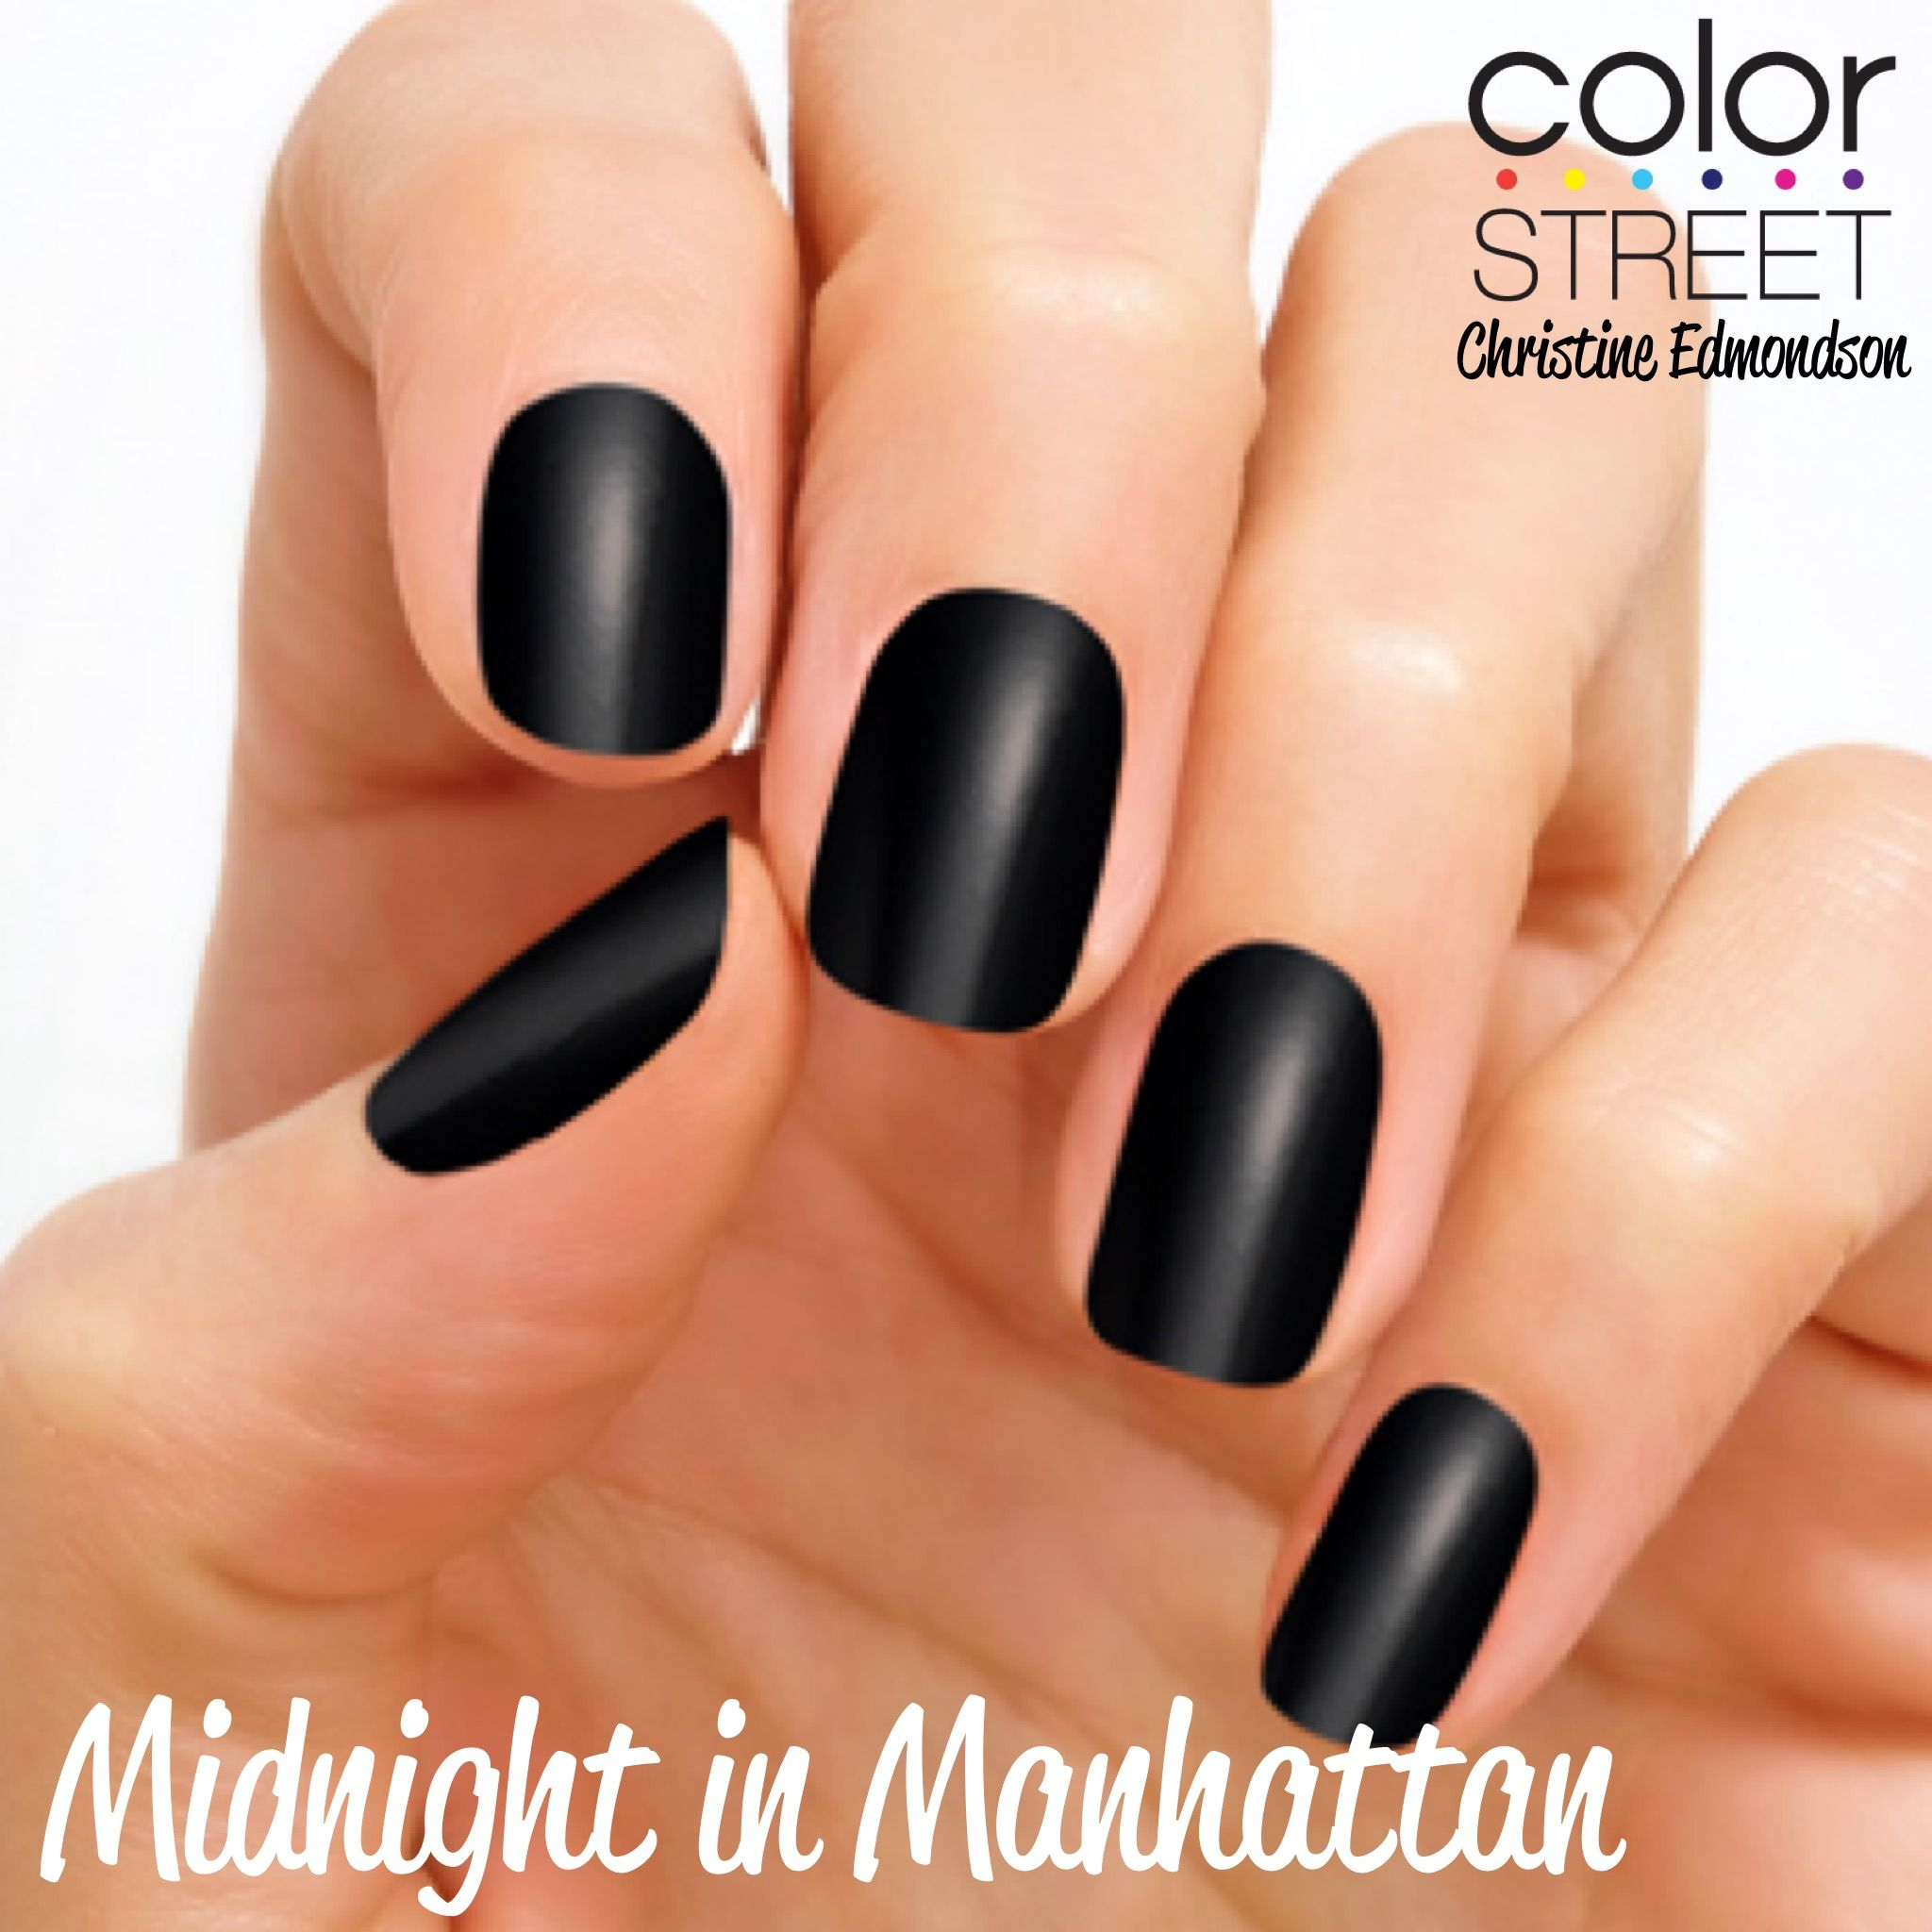 Midnight in Manhattan - 100% nail polish strips that require NO ...